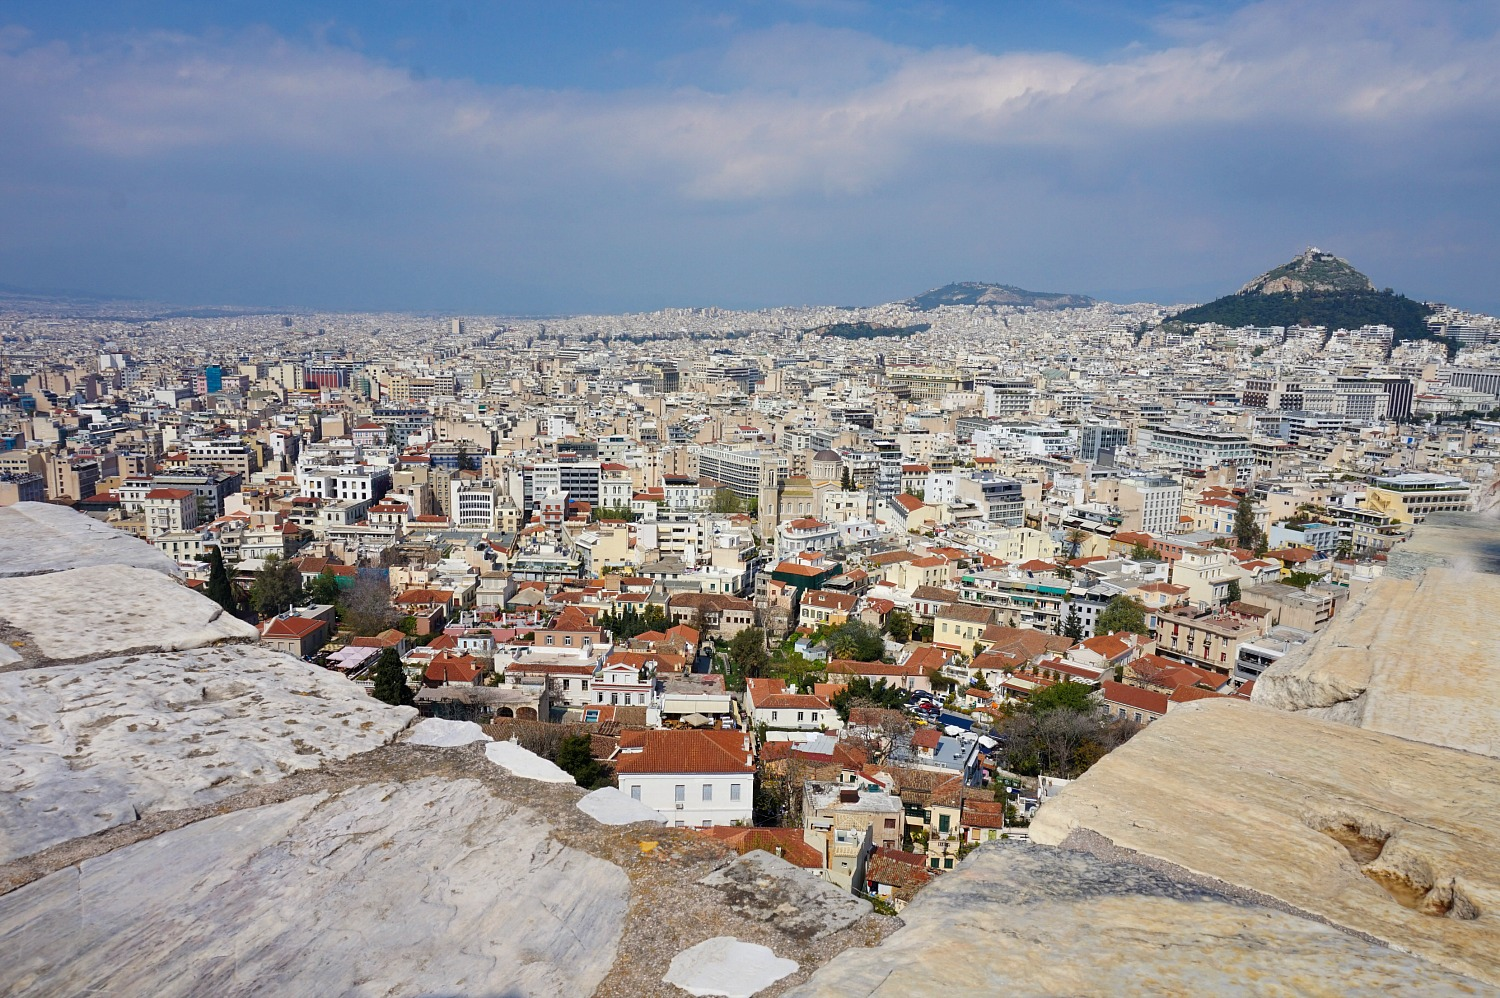 Itinerary for Athens. View of the city.